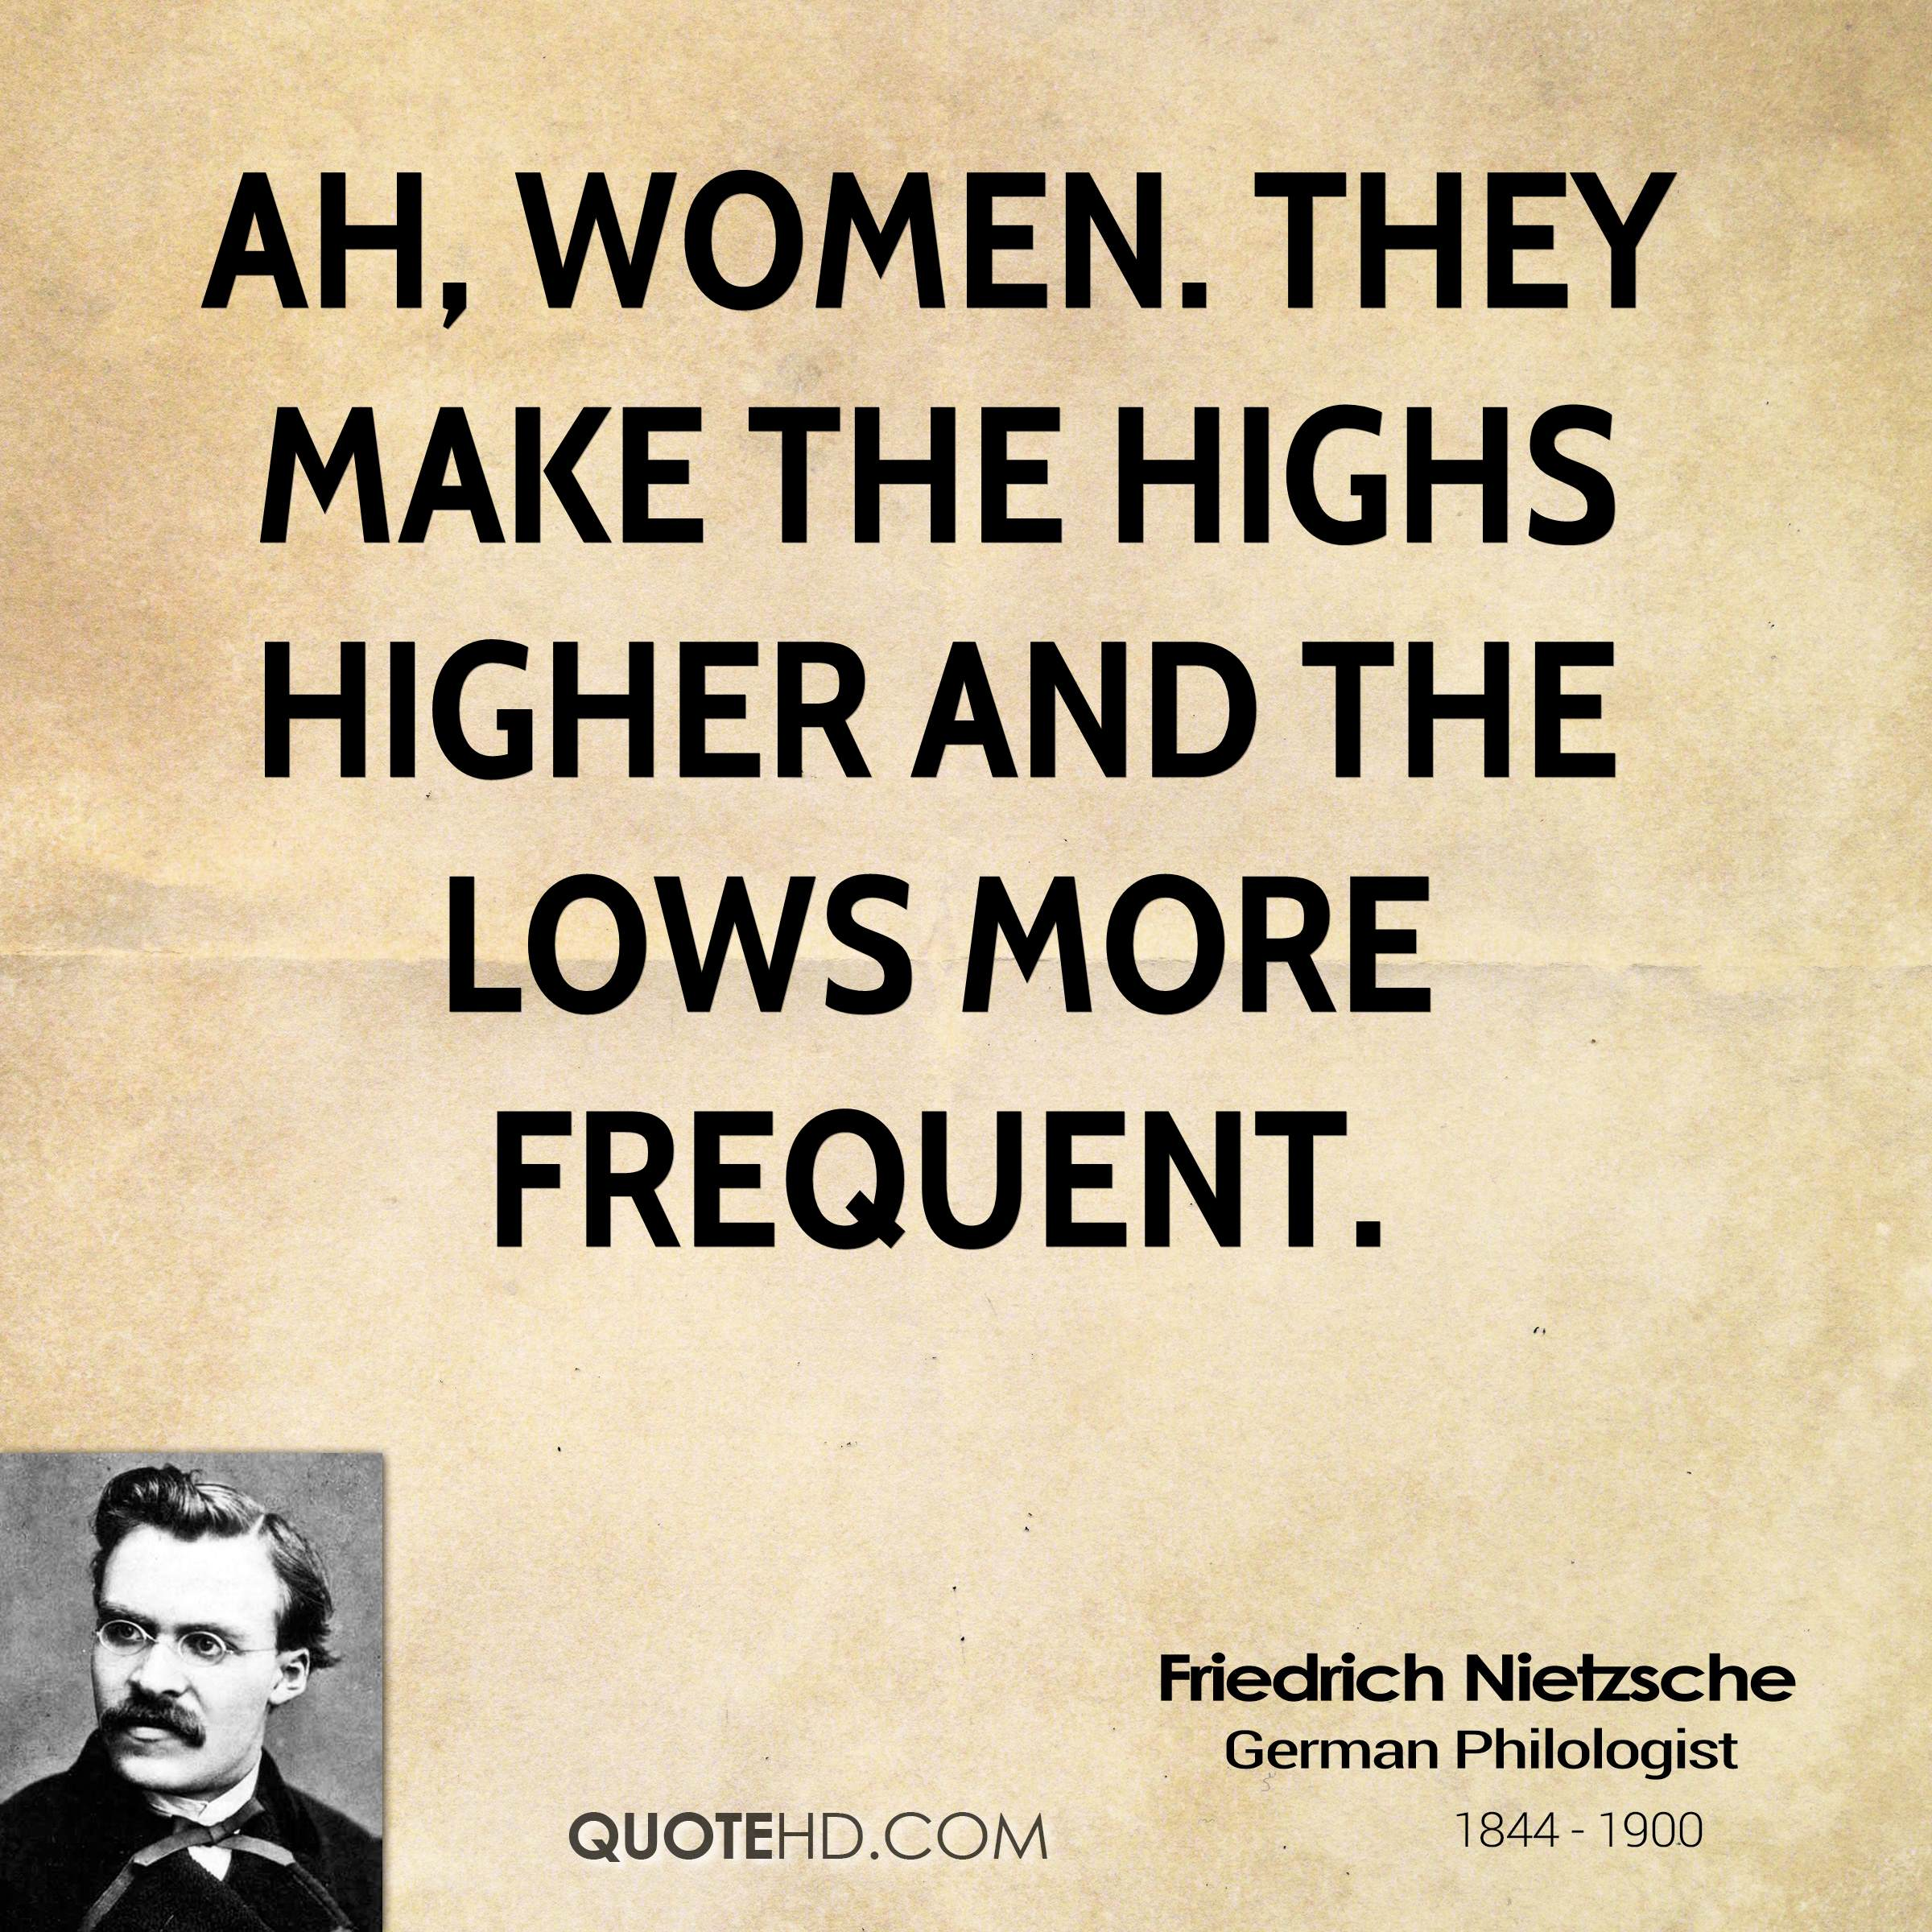 Ah, women. They make the highs higher and the lows more frequent. Friedrich Nietzsche